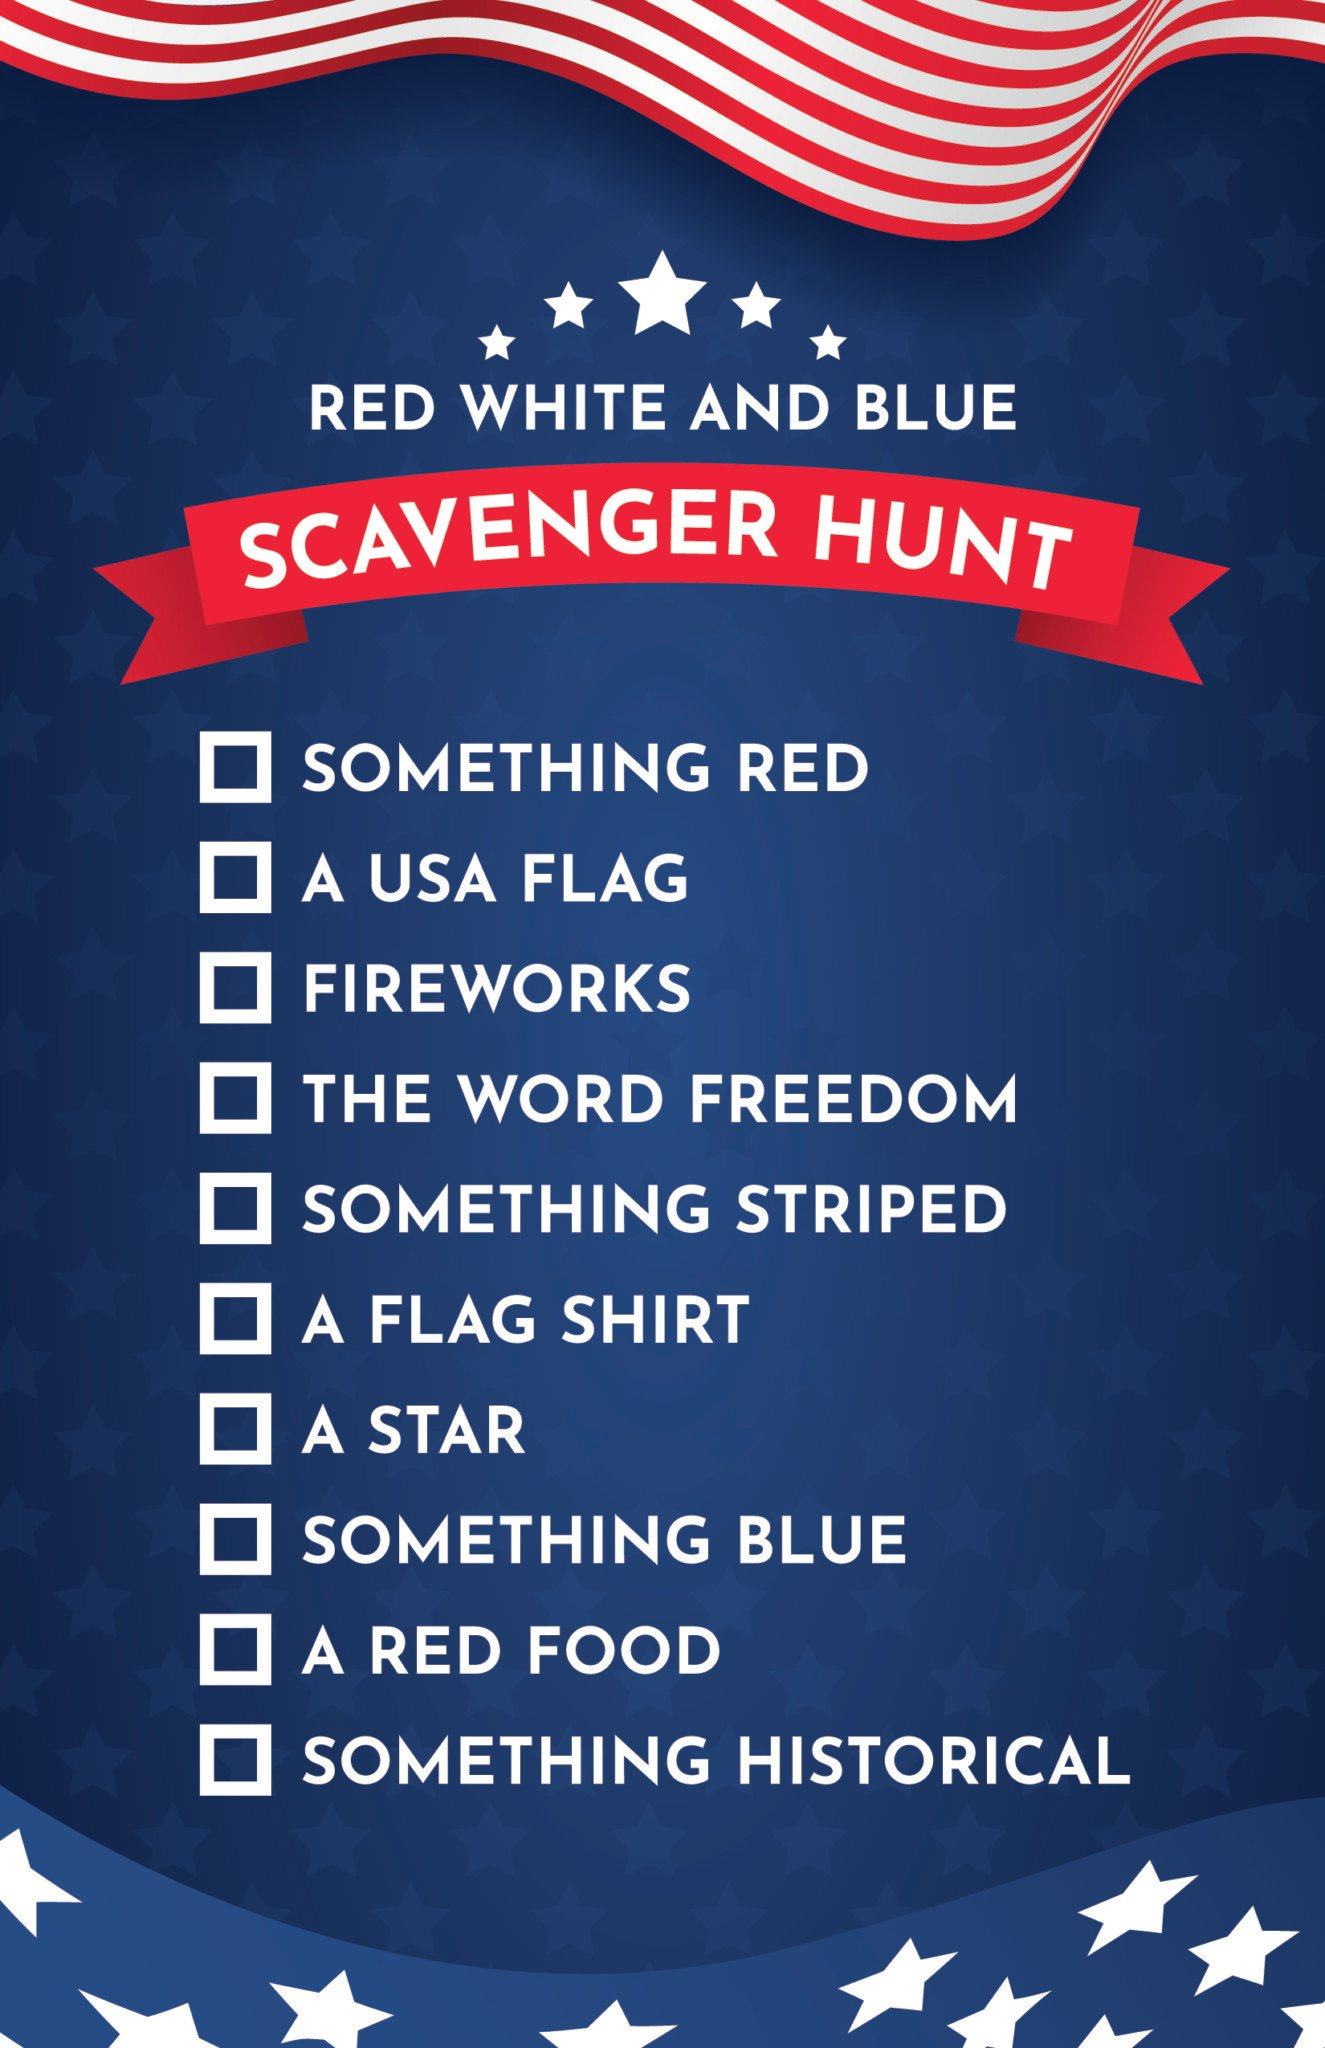 Blue 4th of July scavenger hunt with checkboxes